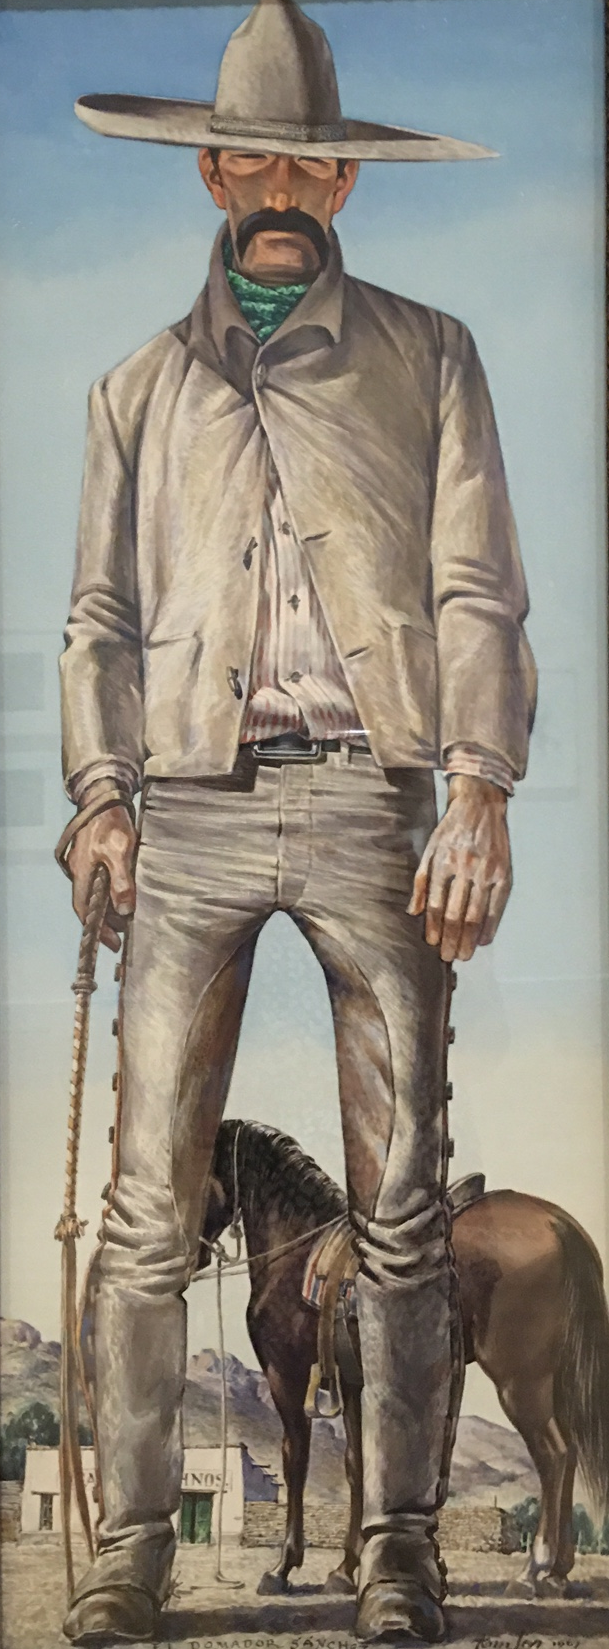 A cowboy painted by El Paso native Tom Lea.